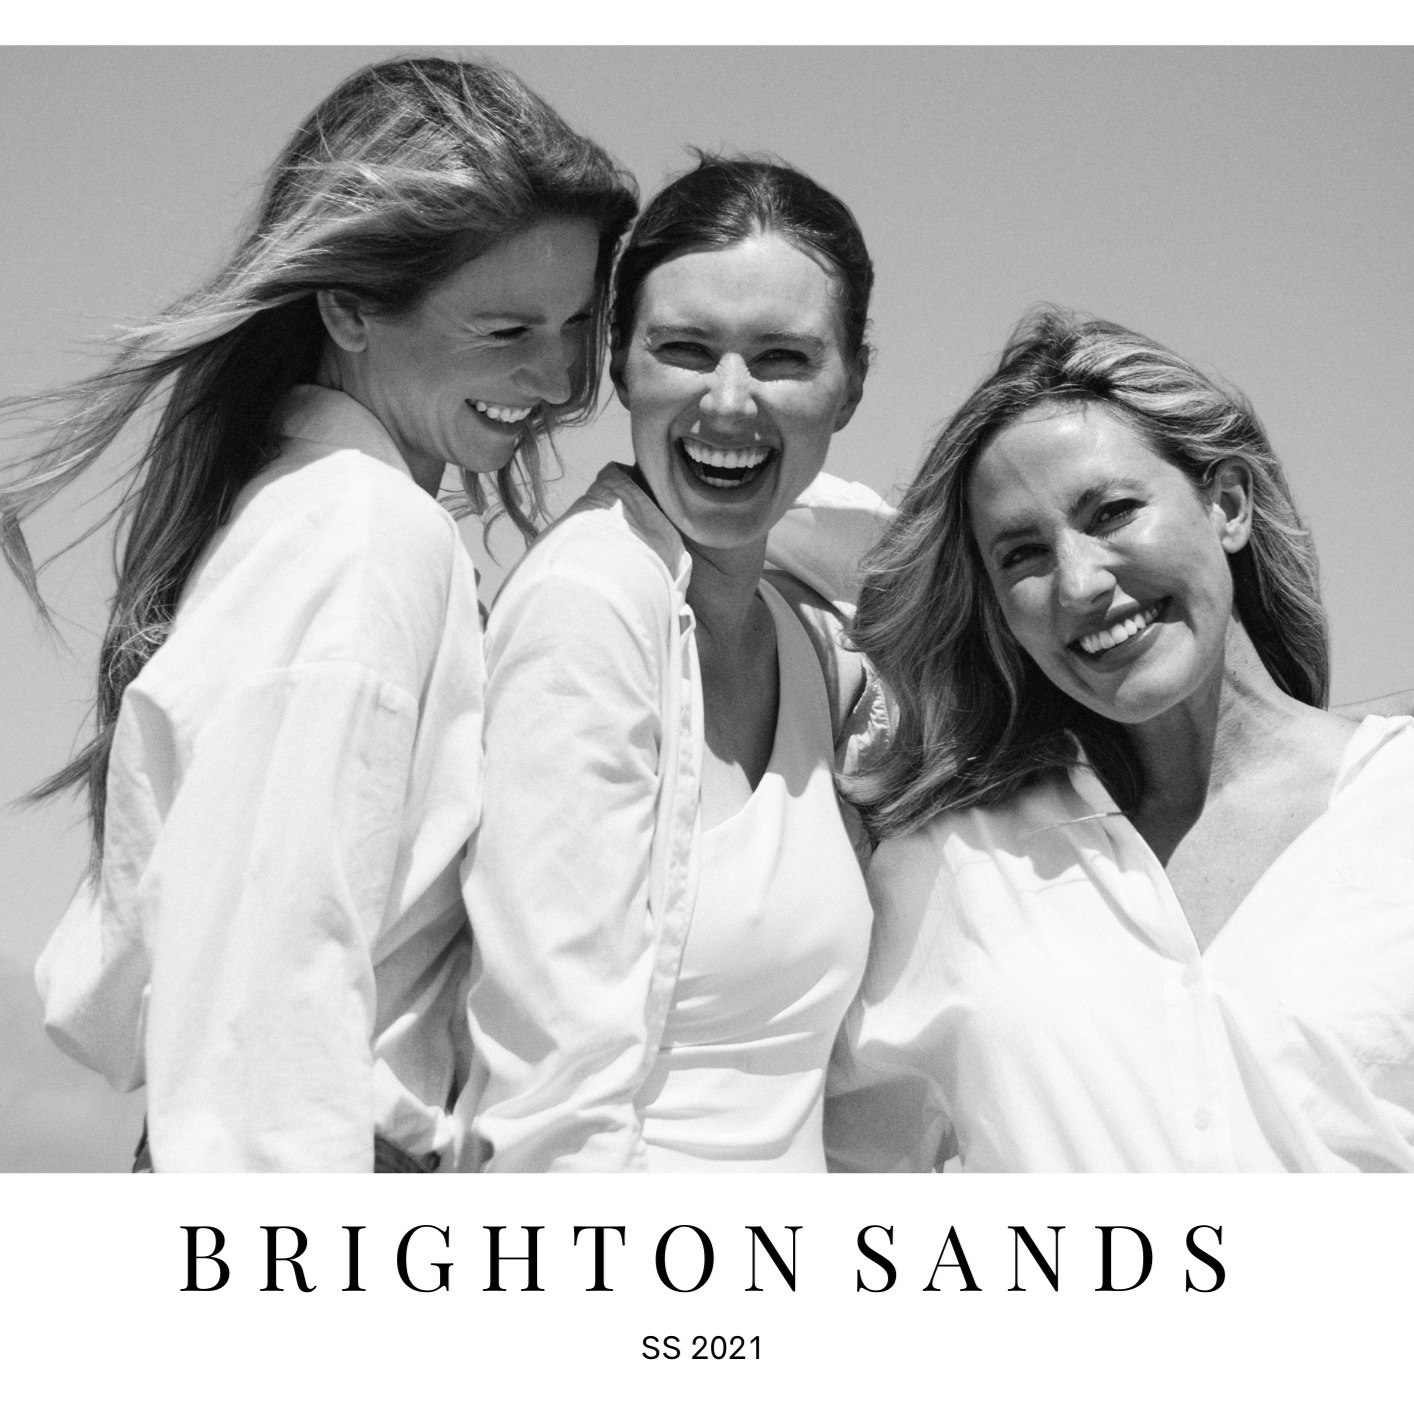 BRIGHTON SANDS EDITORIAL SHOOT BY THE MODELS | The Models blog